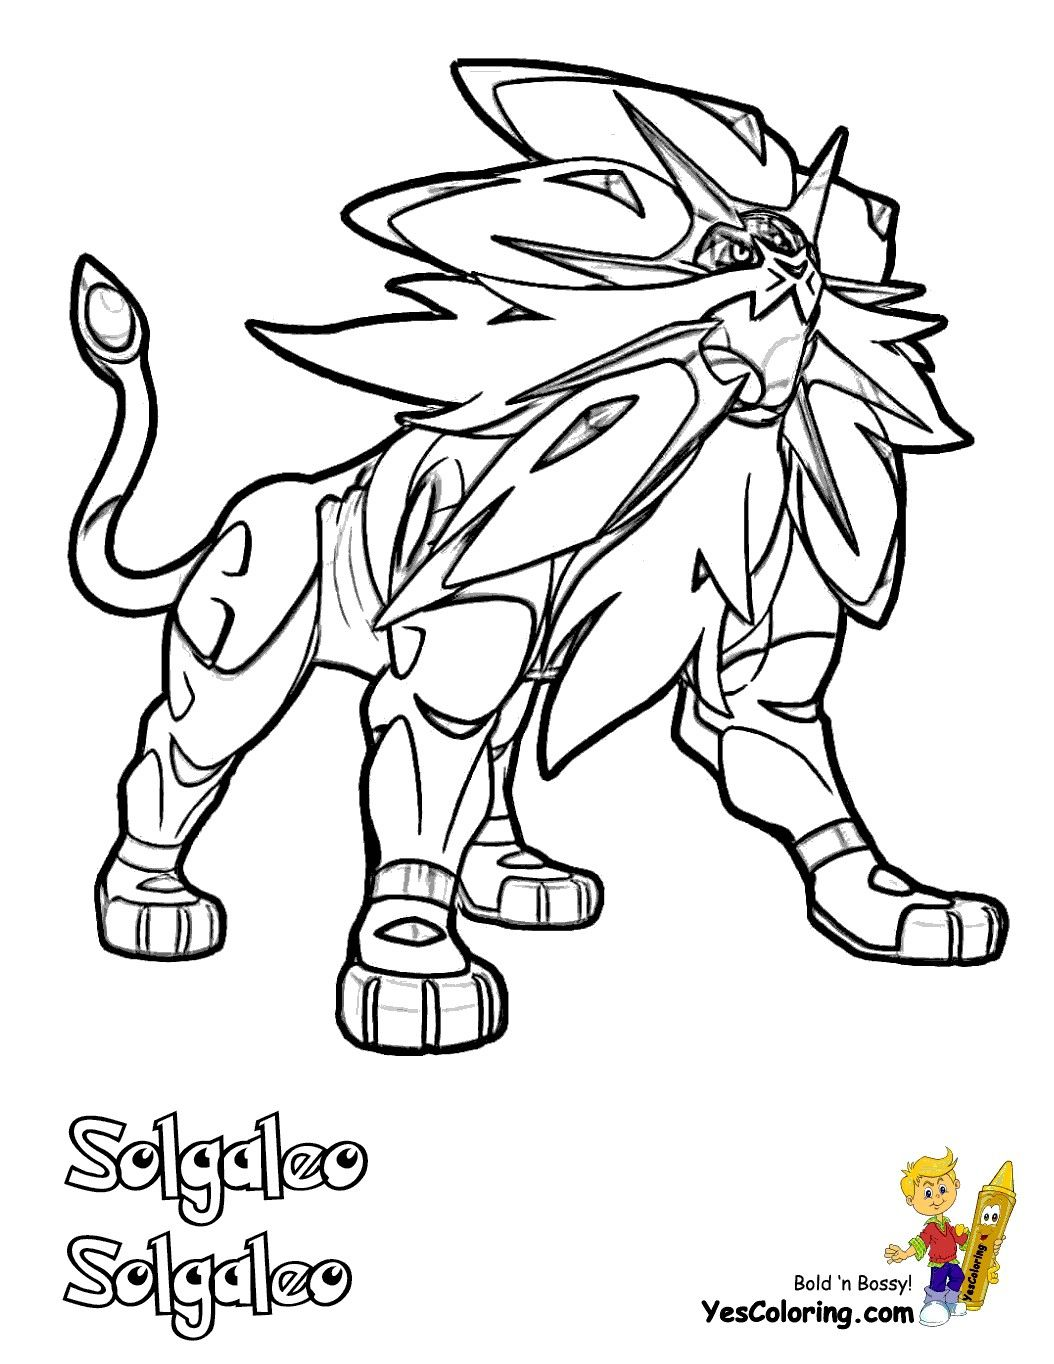 Pokemon Coloring Pages Solgaleo Of Pokemon Coloring Pages Solgaleo Pokemon Coloring Pages Solgal Pokemon Coloring Pages Cartoon Coloring Pages Pokemon Coloring